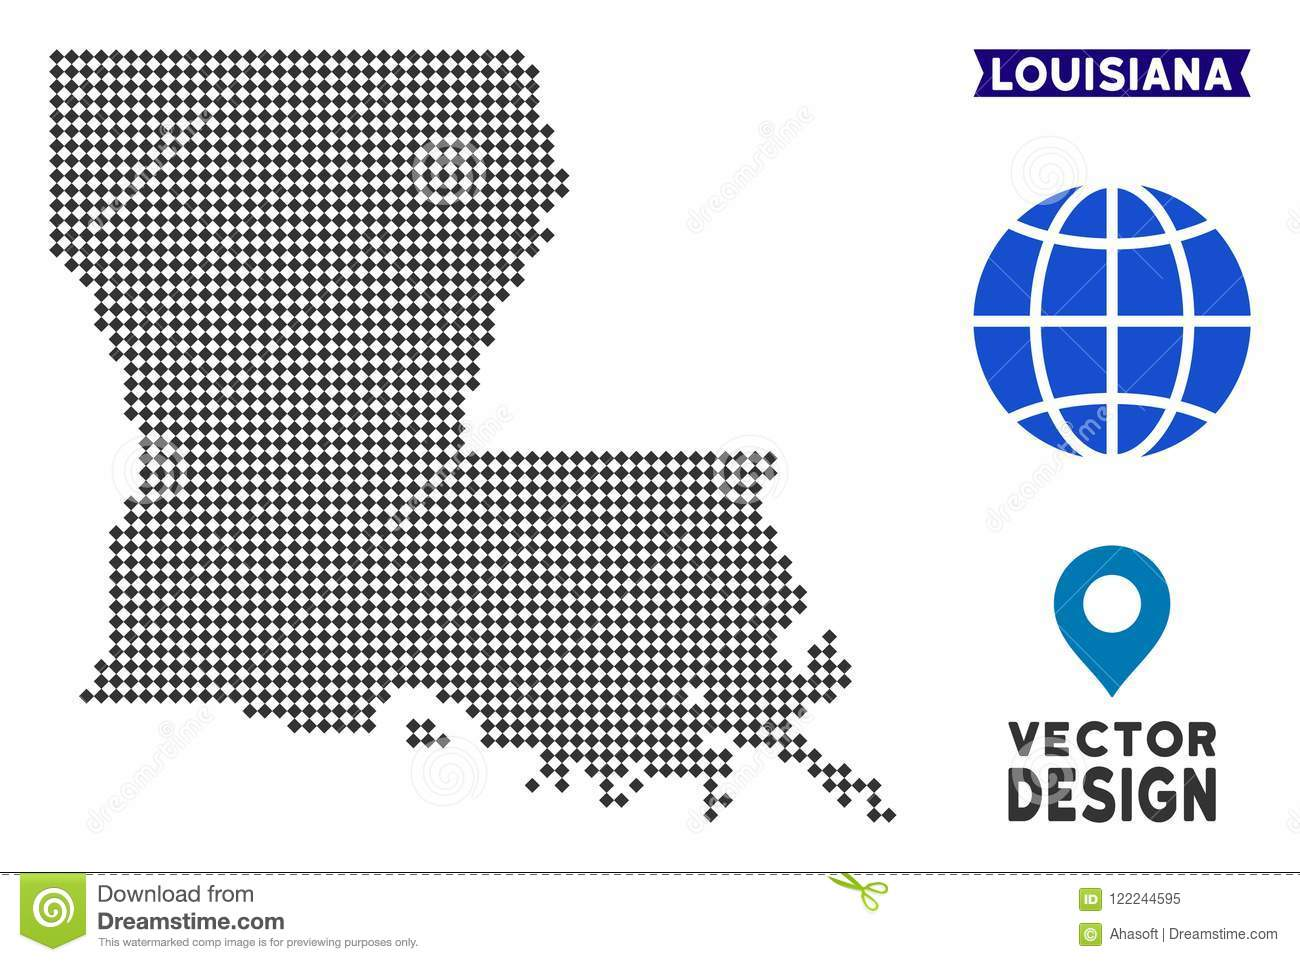 Dot Louisiana State Map stock vector. Illustration of abstract ...